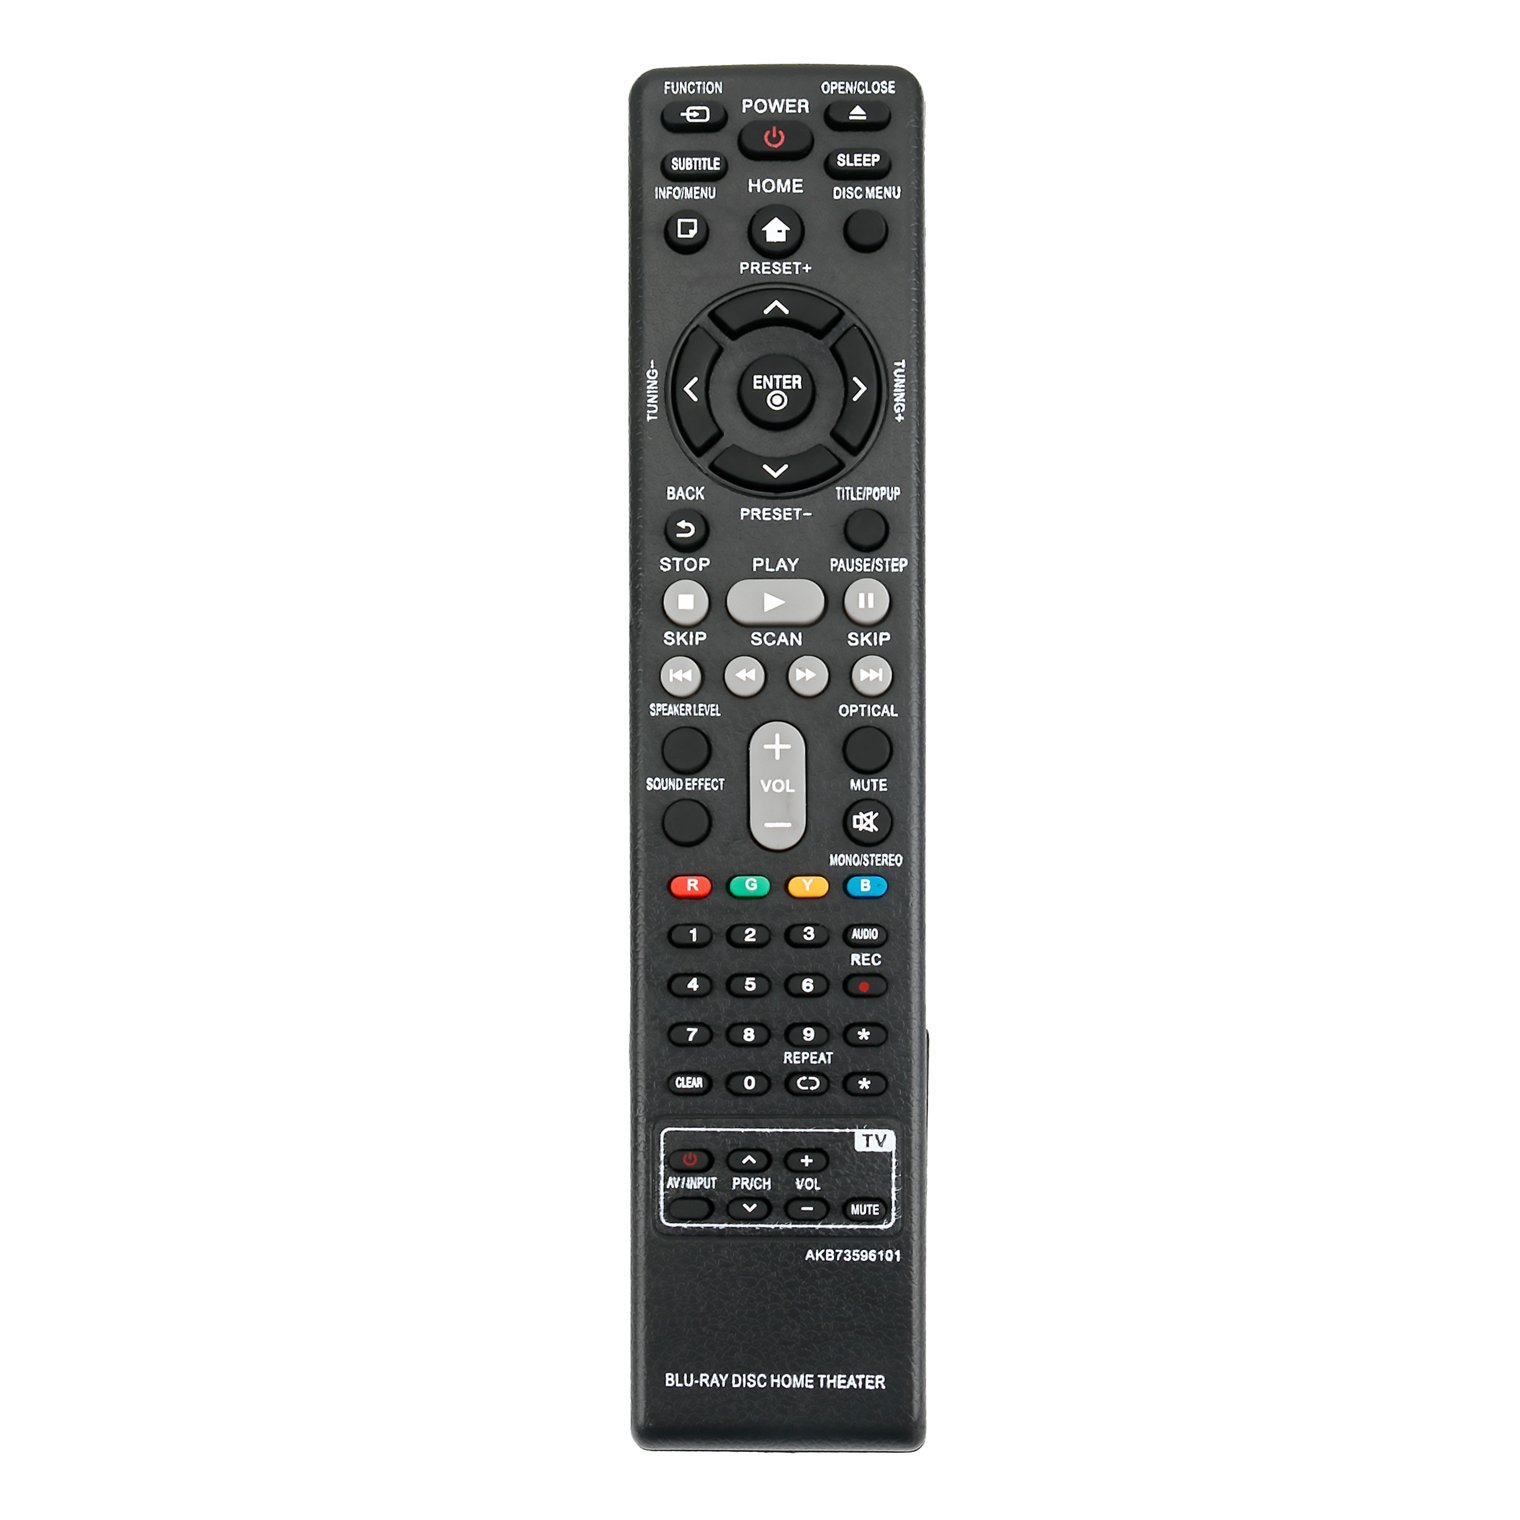 New AKB73596101 Replace Remote Control AKB73596102 fit for LG S62S1-S BH6220S BH6240S BH6340H BH6520TW BH6720S BH6720SMW BH6820SW BH6820SWMW BH9520TW Smart Blu-Ray DISC DVD Home Theater Cinema System